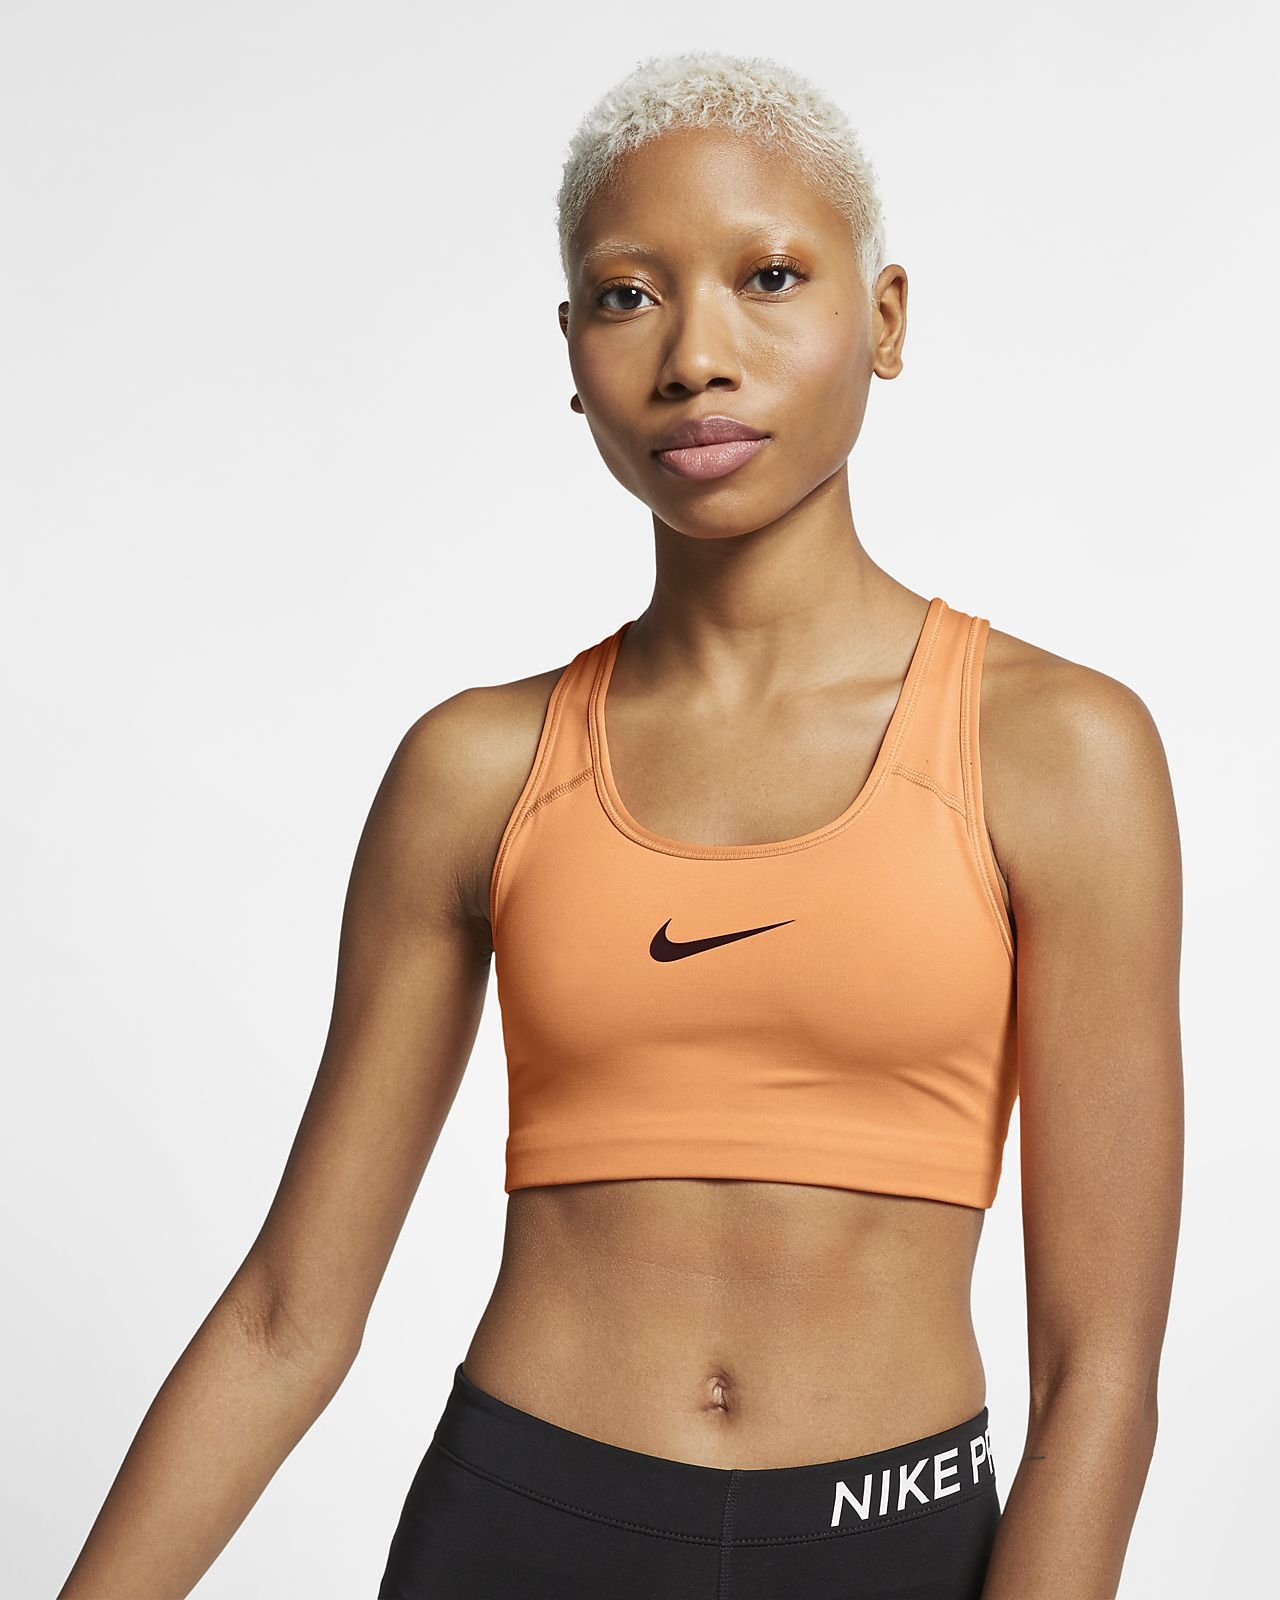 98bc4ad2d4a Nike Women s Swoosh Medium Support Sports Bra. Nike.com